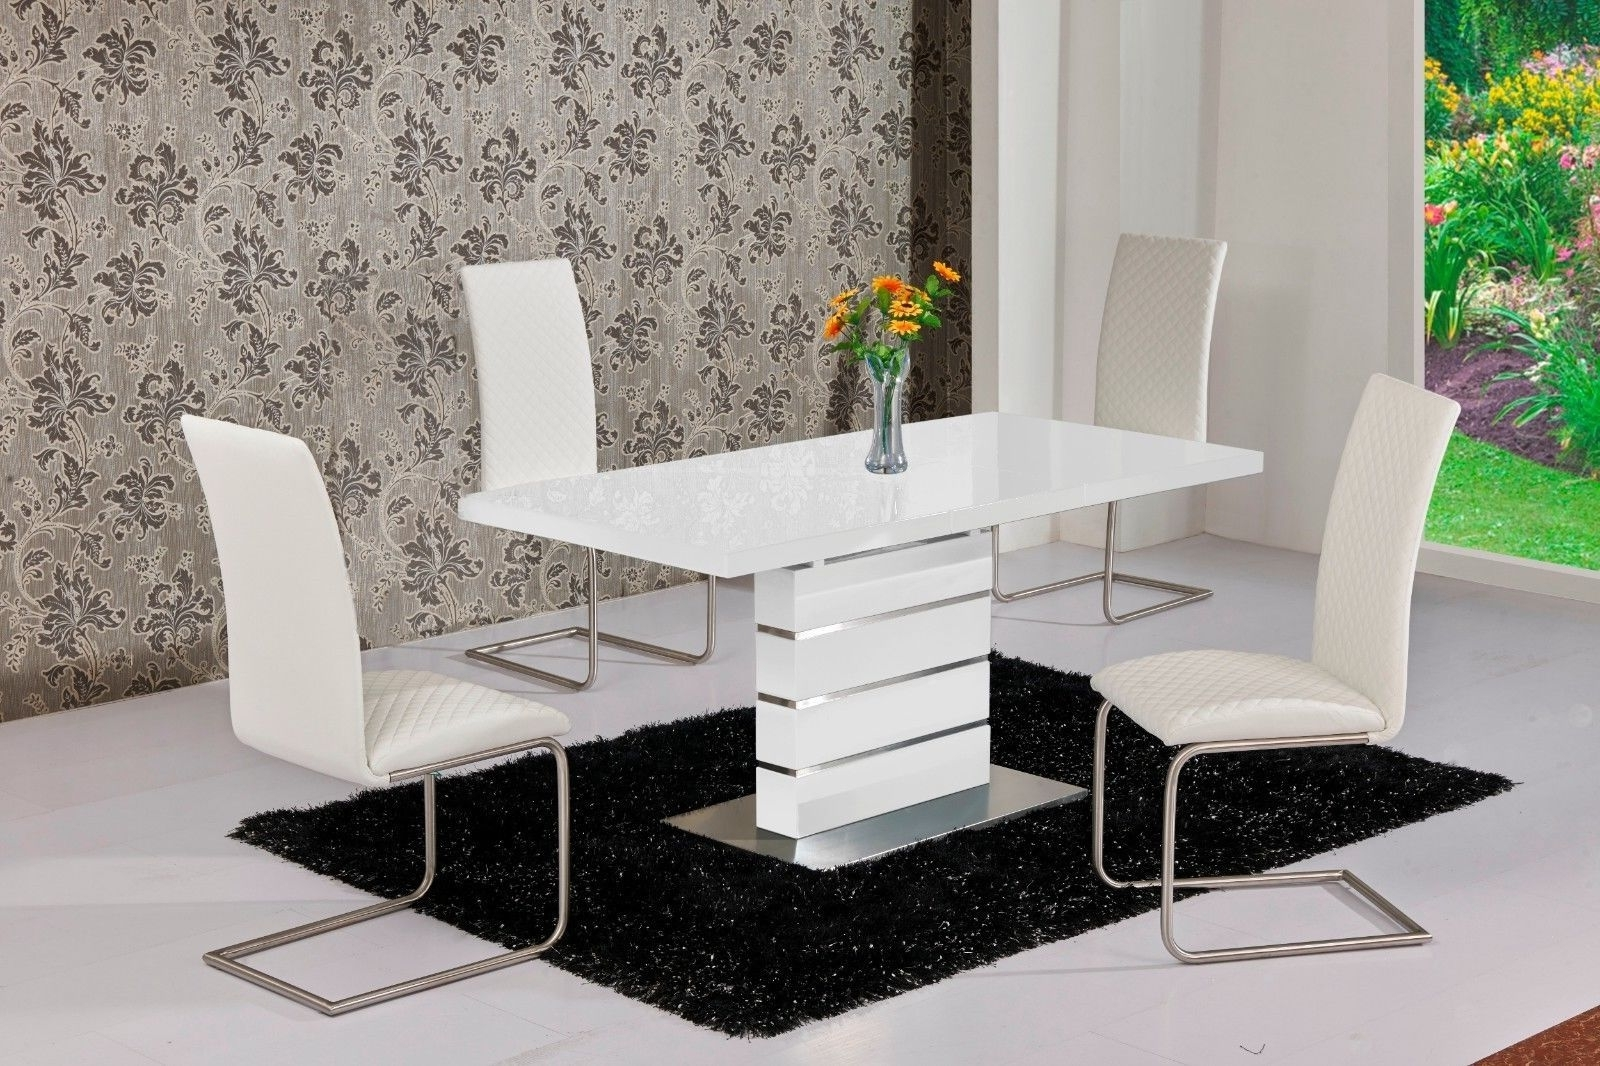 Cheap White High Gloss Dining Tables With Regard To Best And Newest Mace High Gloss Extending 120 160 Dining Table & Chair Set – White (Gallery 3 of 25)